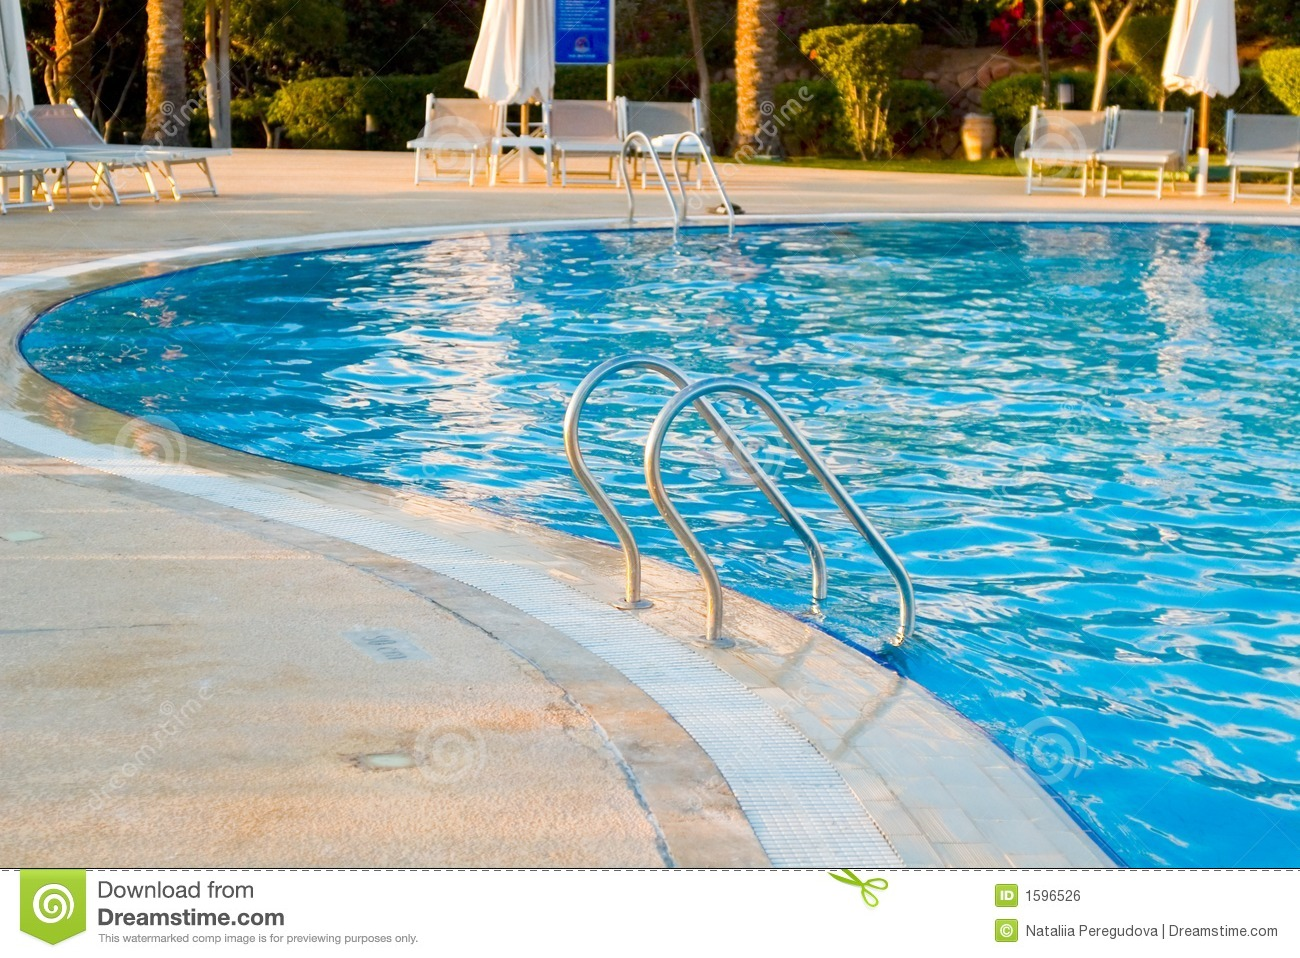 Swimming Pool Stairs Royalty Free Stock Image - Image: 1596526